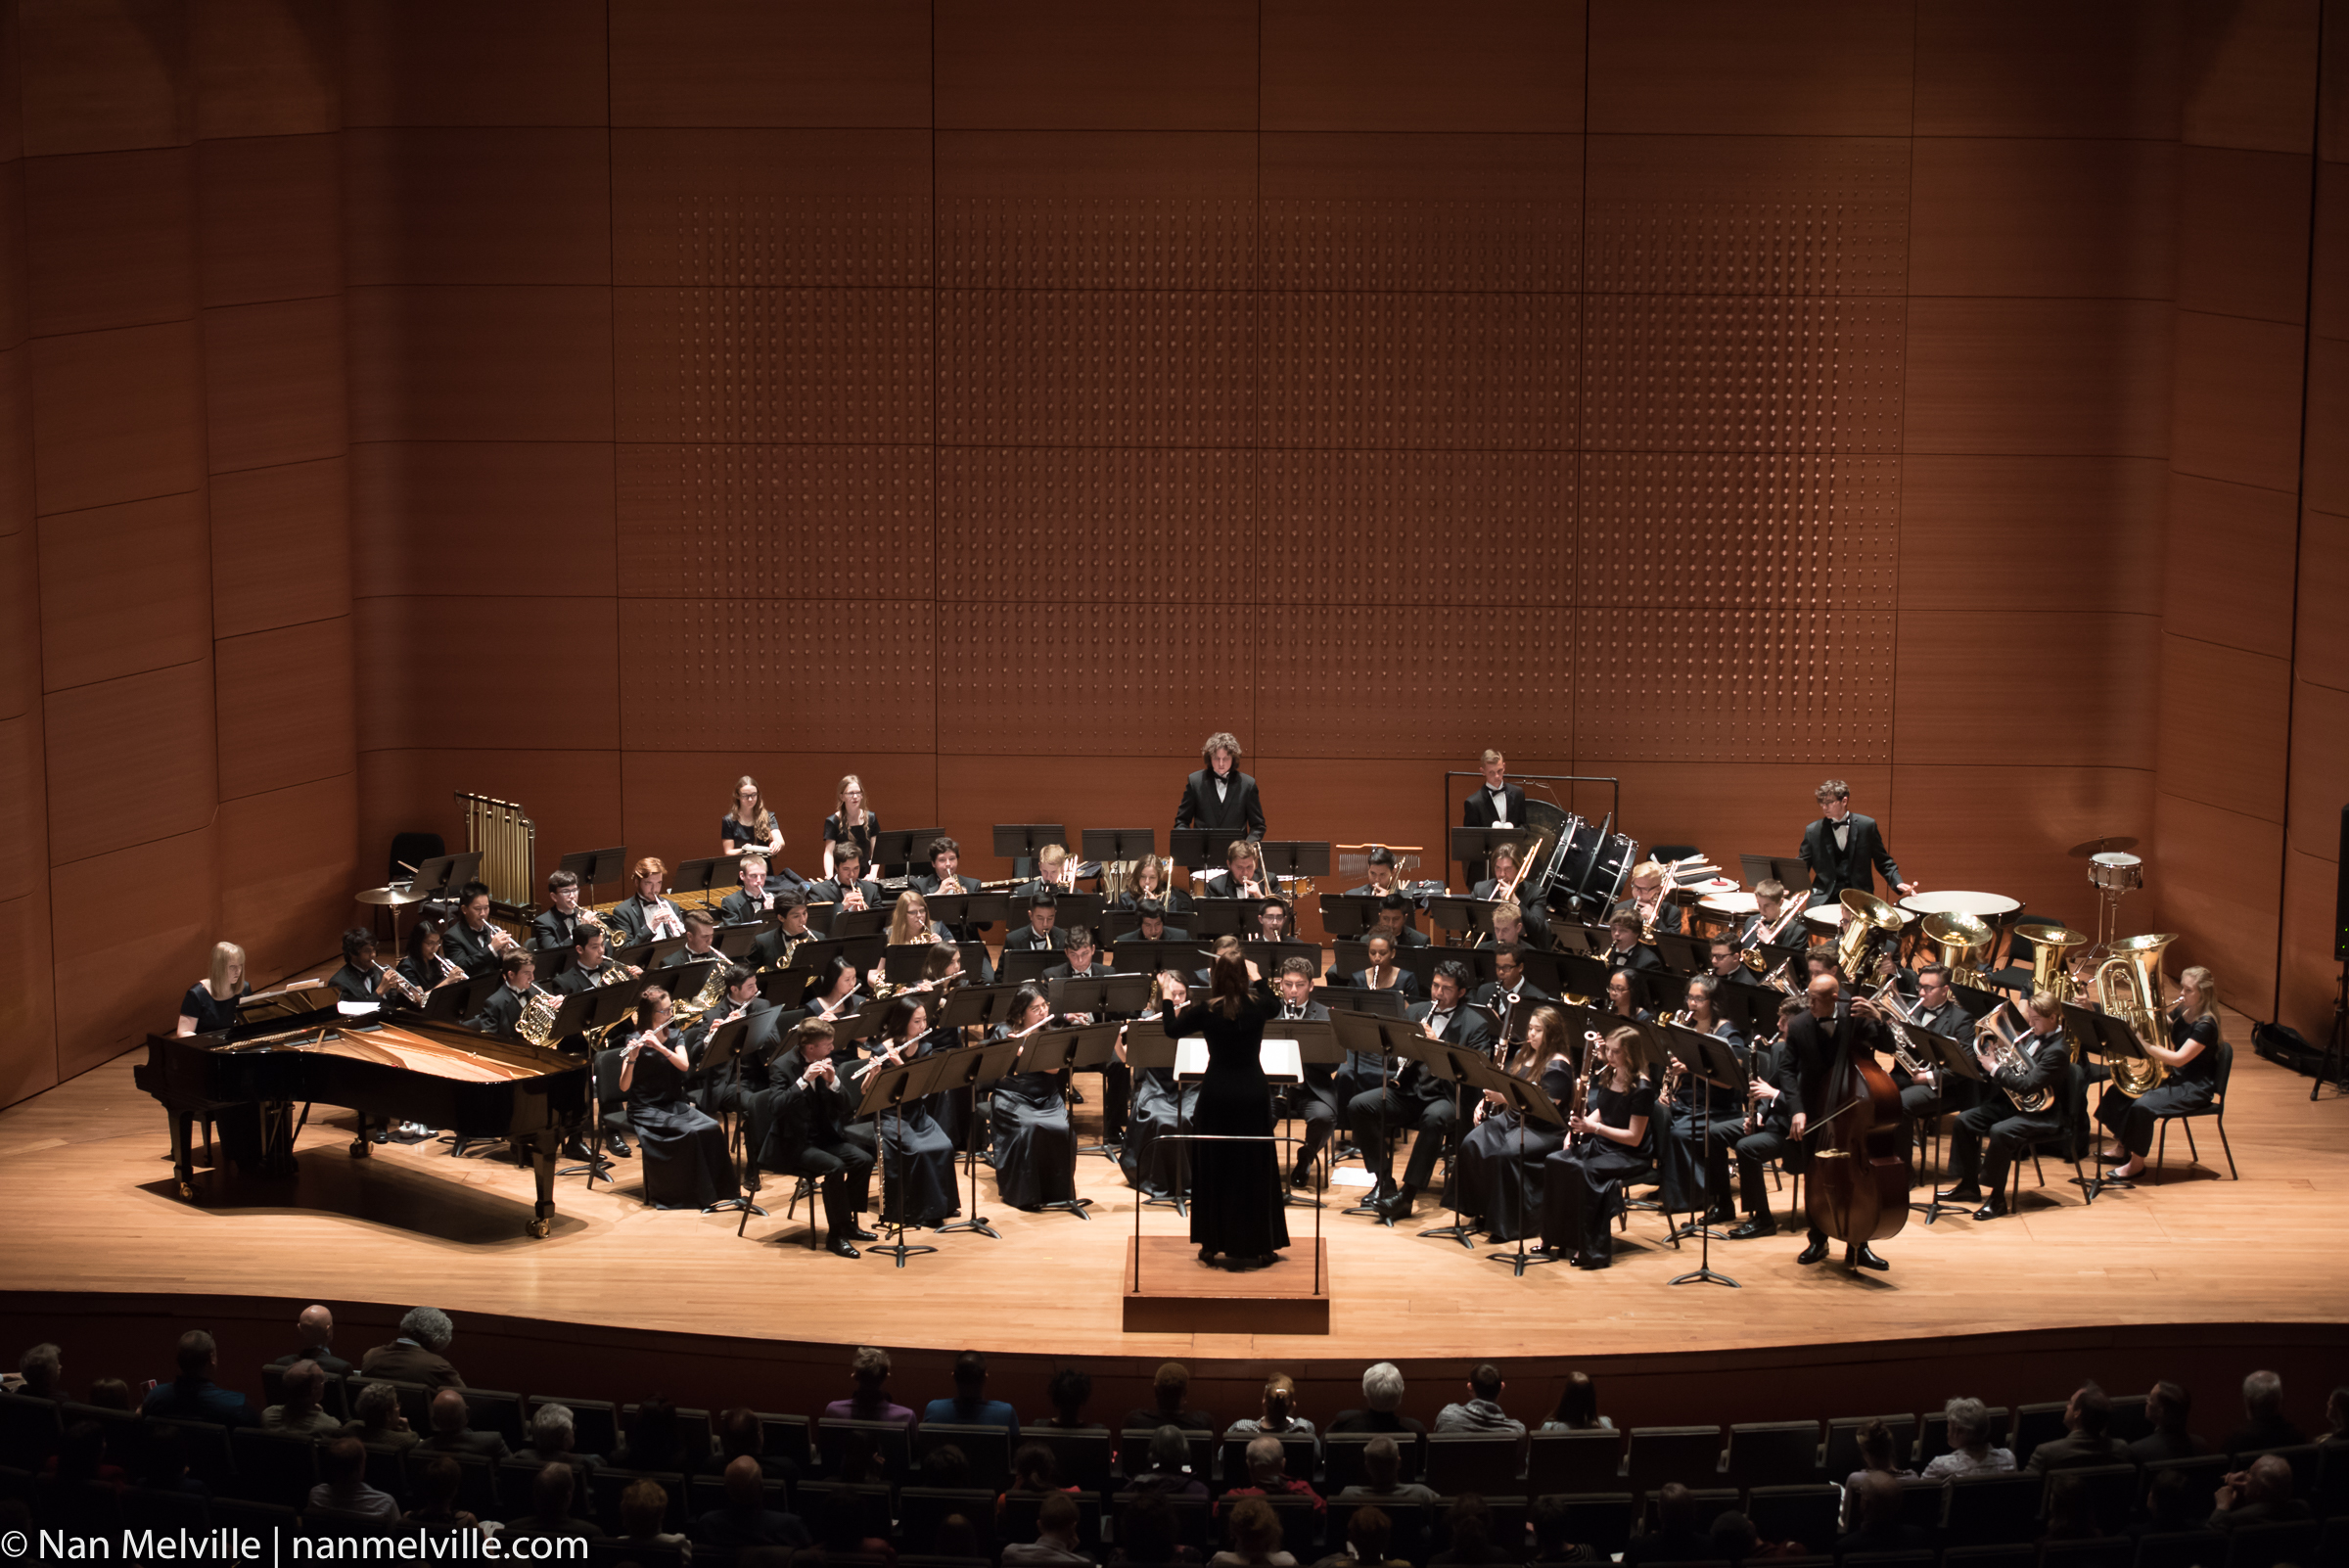 Distinguished Concerts International New York (DCINY) presents Green Valley High School Symphonic Wind Orchestra/ Hershey Symphony Festival Strings and Hershey Symphony Orchestra in Review